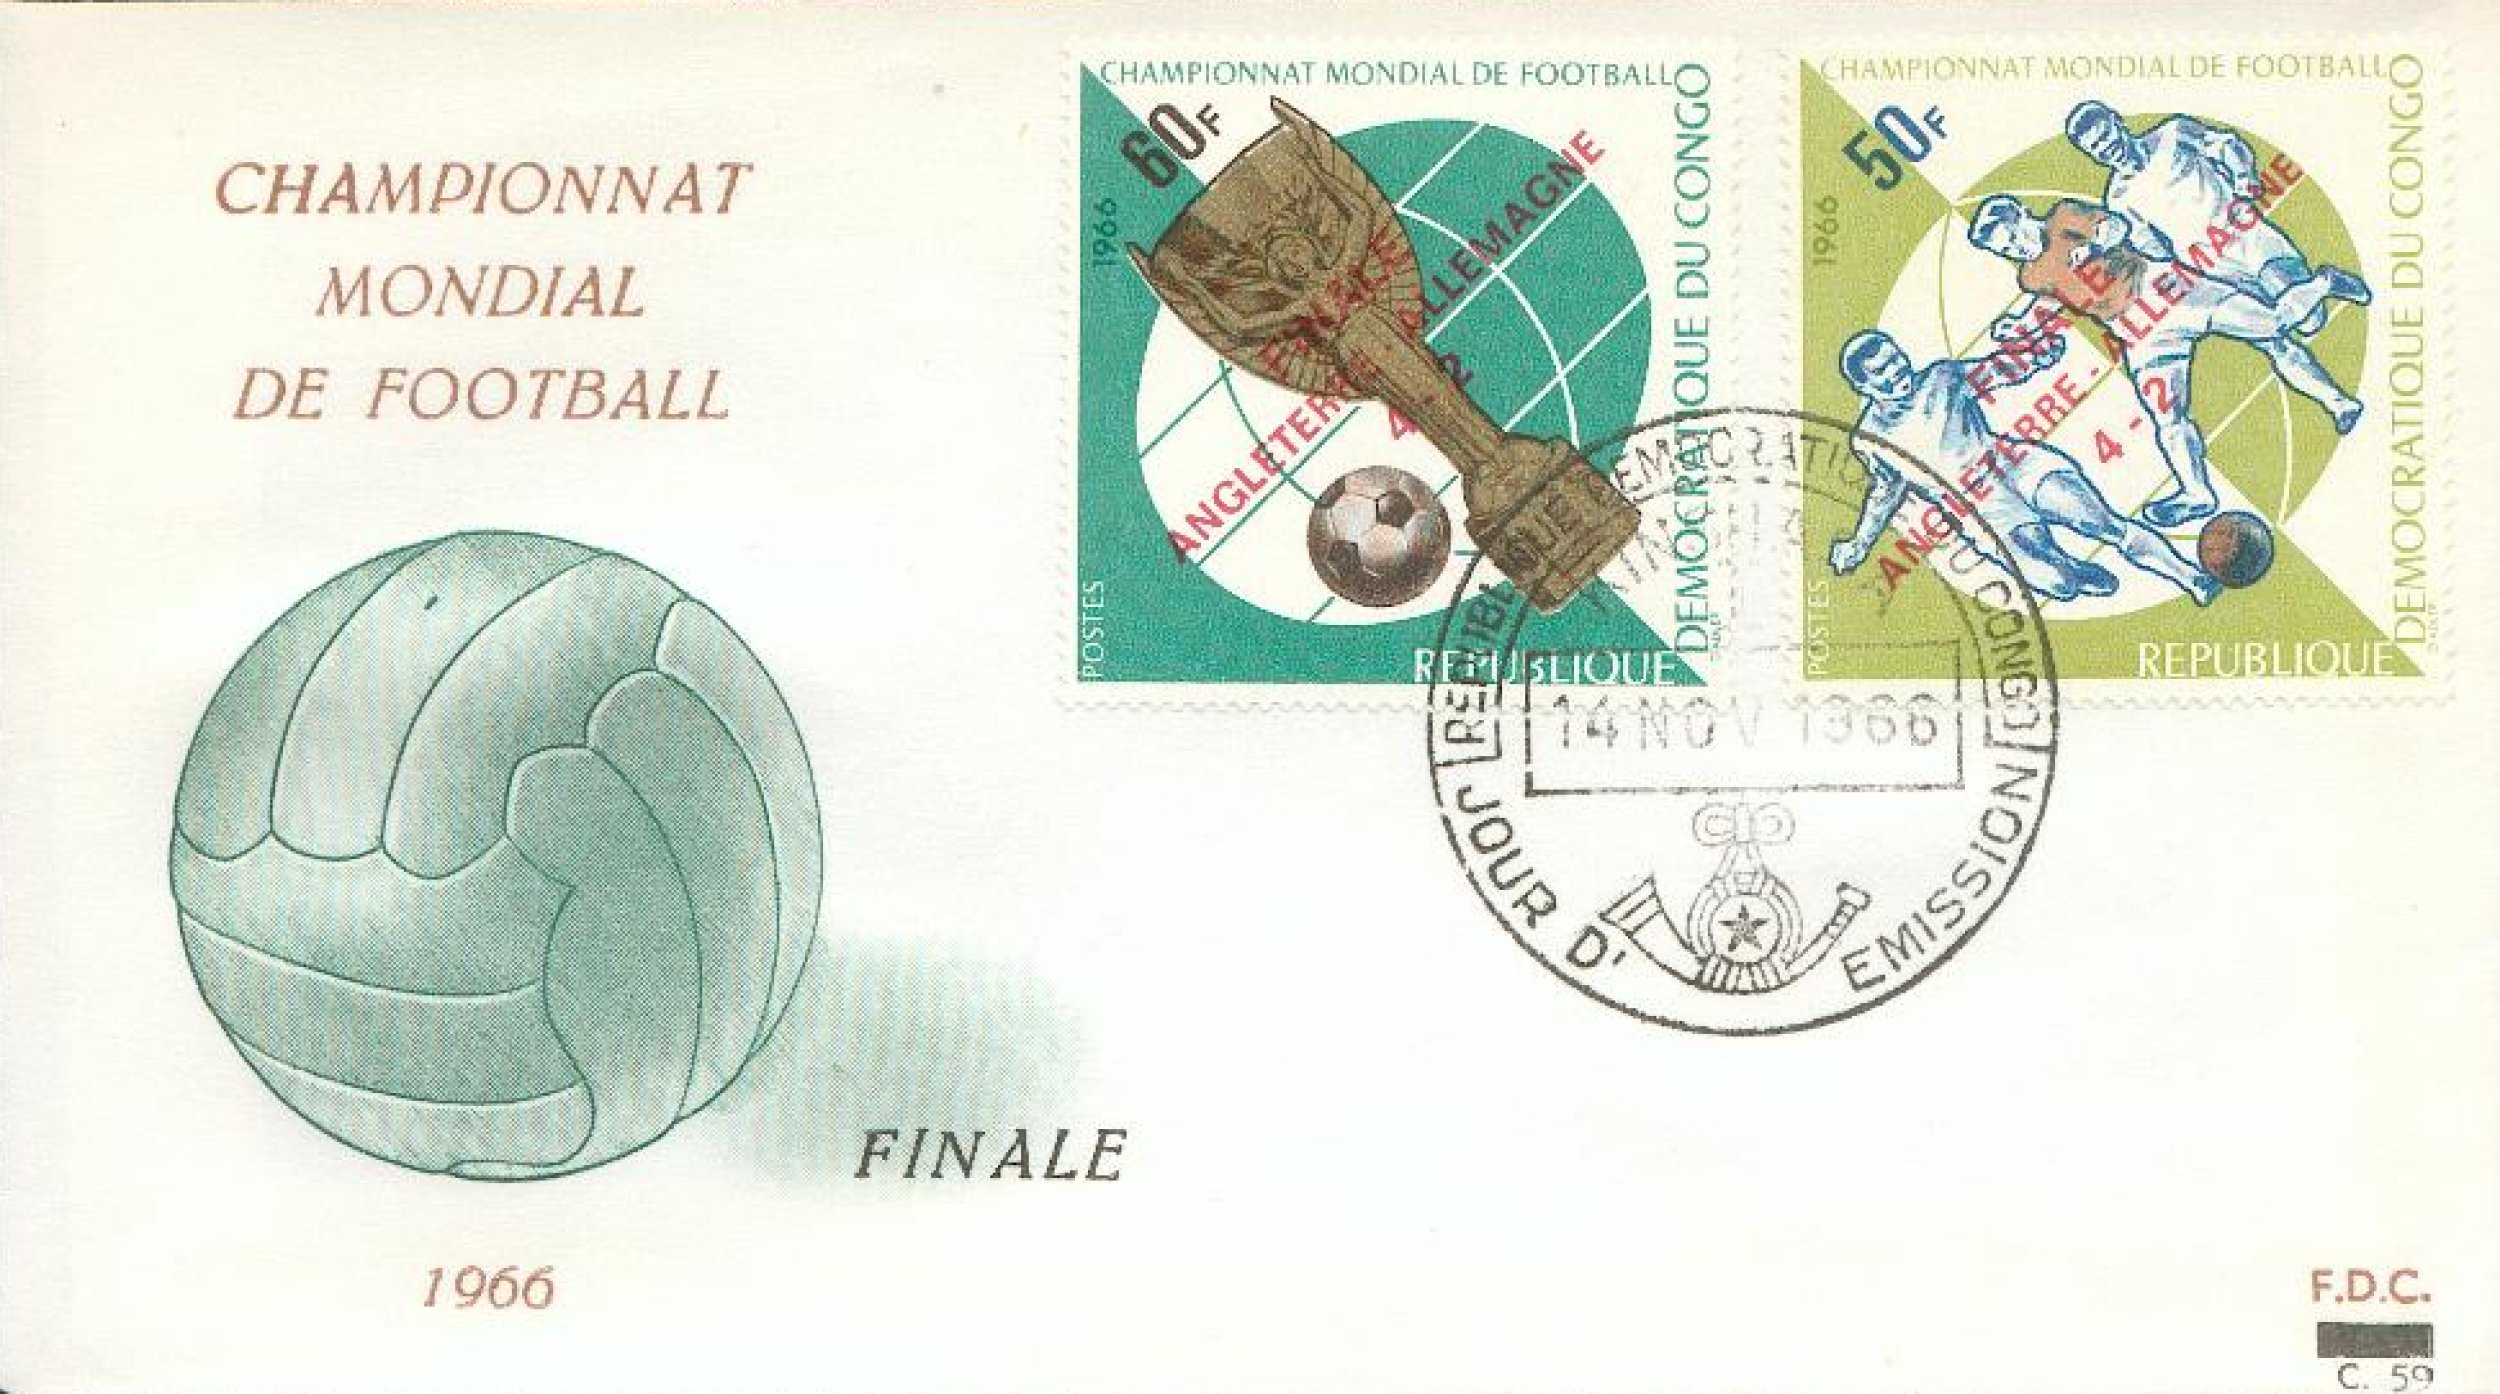 FDC C59